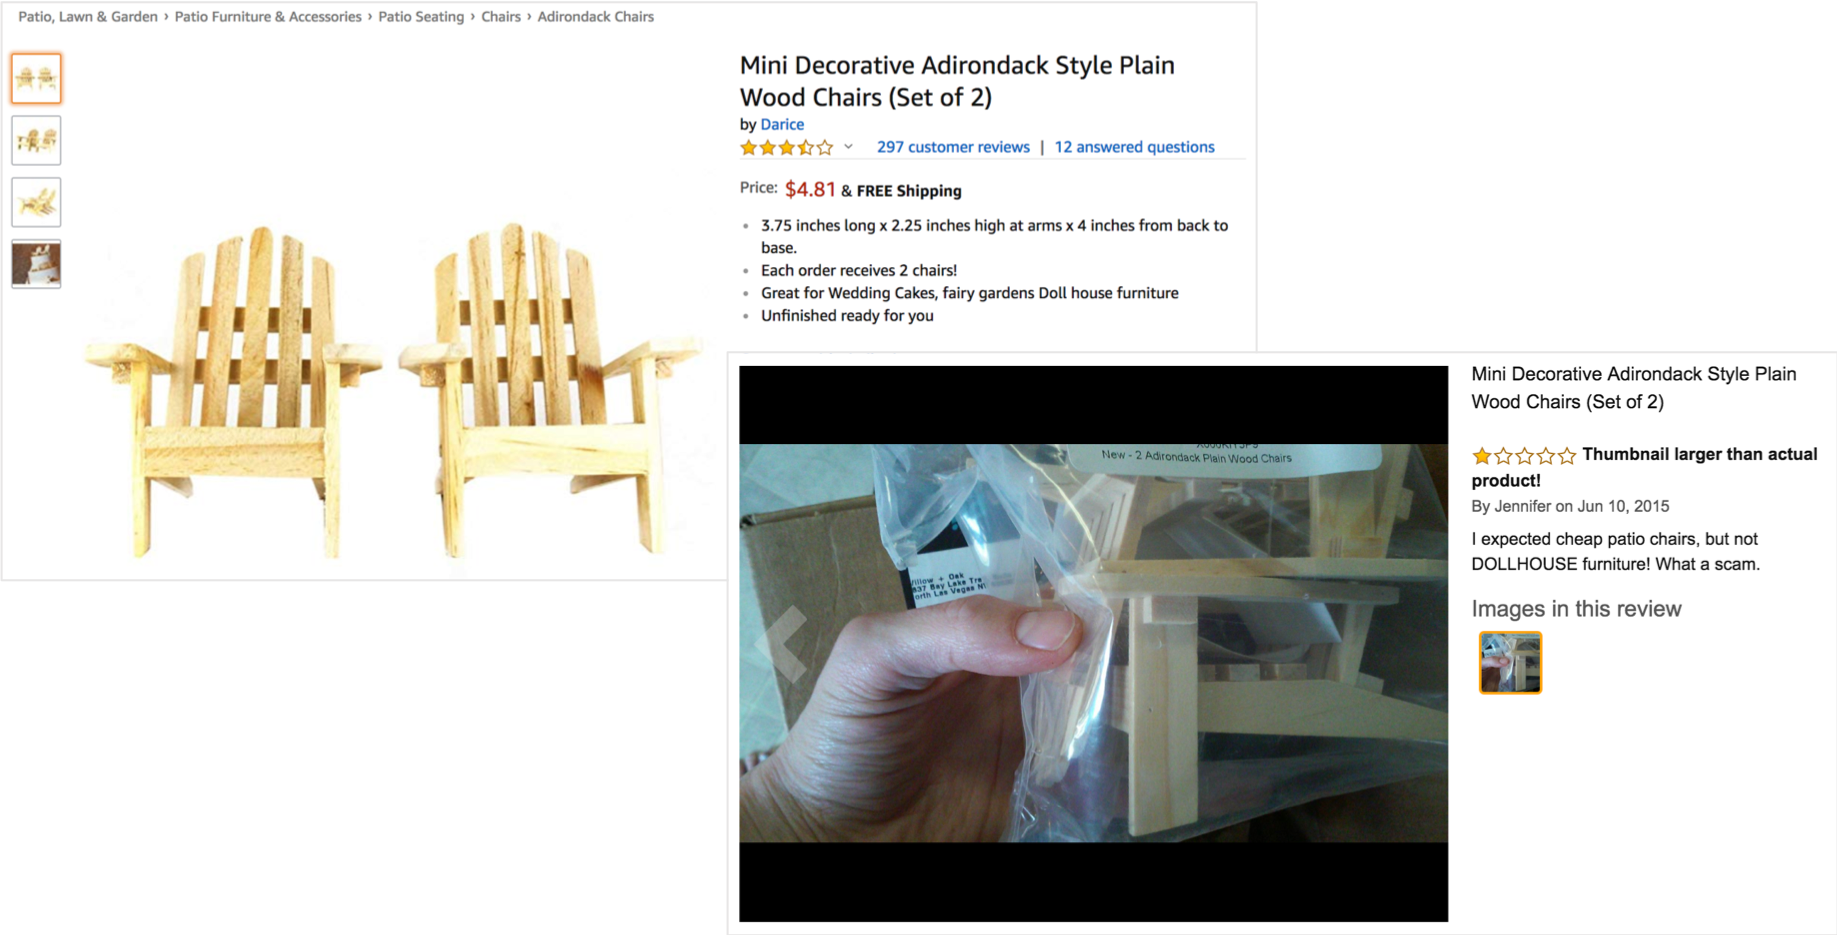 example of bad images on an ecommerce product listing